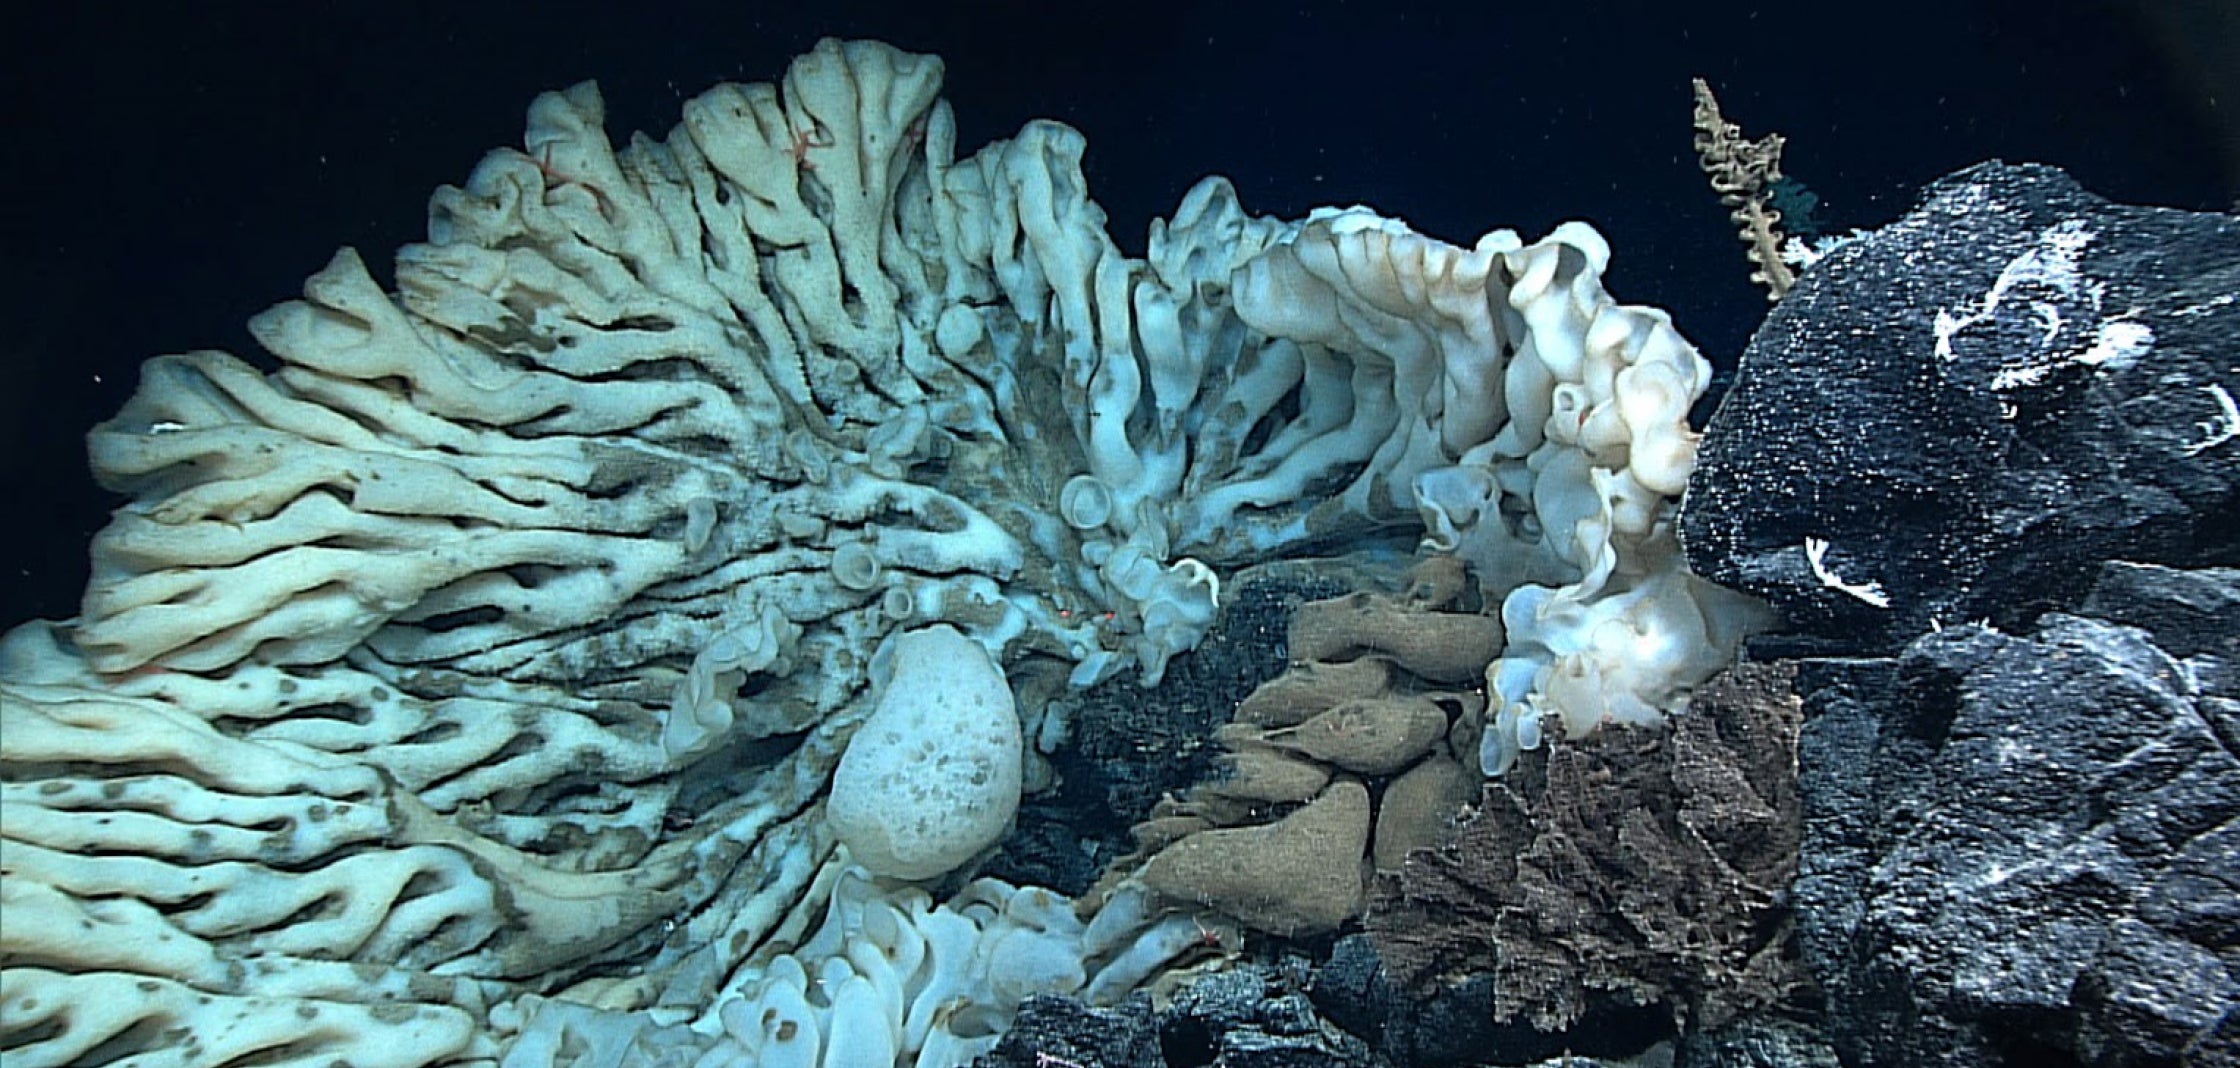 This Might Be The Largest Sponge In The World